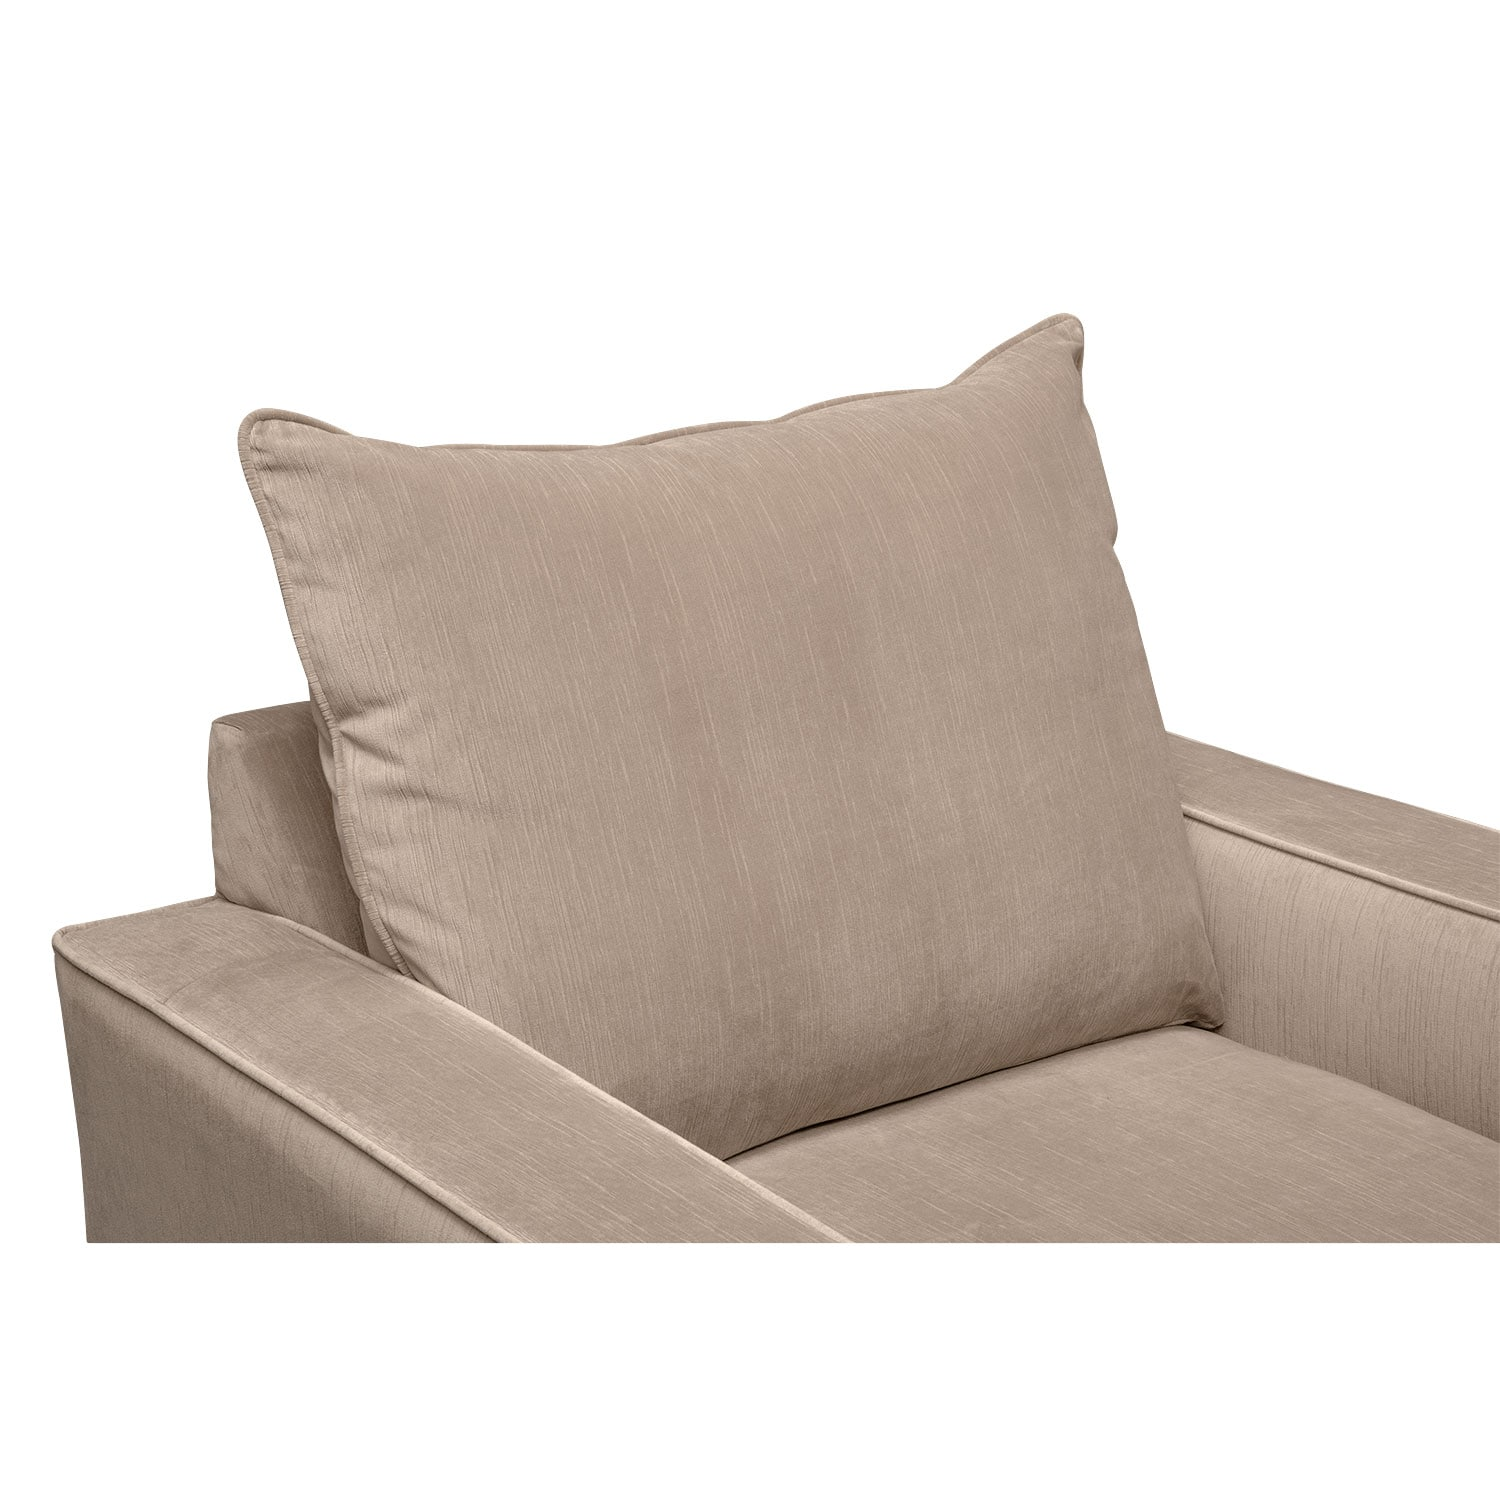 Bryden Queen Memory Foam Sleeper Sofa Loveseat And Chair Set Beige Value City Furniture